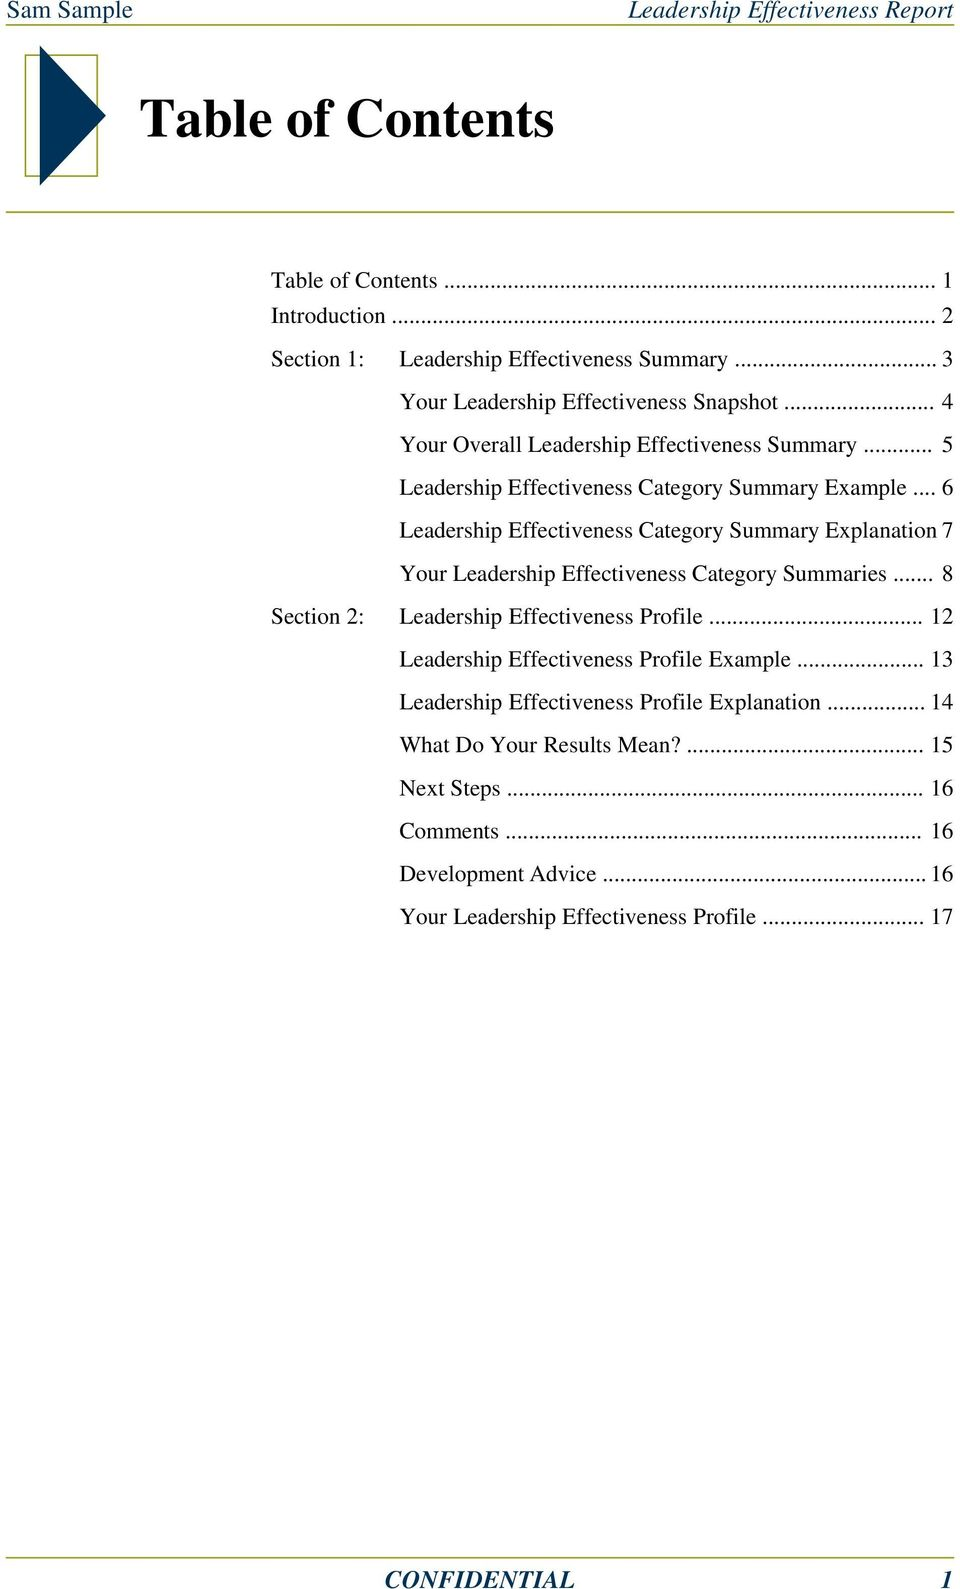 .. 6 Leadership Effectiveness Category Summary Explanation 7 Your Leadership Effectiveness Category Summaries... 8 Section 2: Leadership Effectiveness Profile.